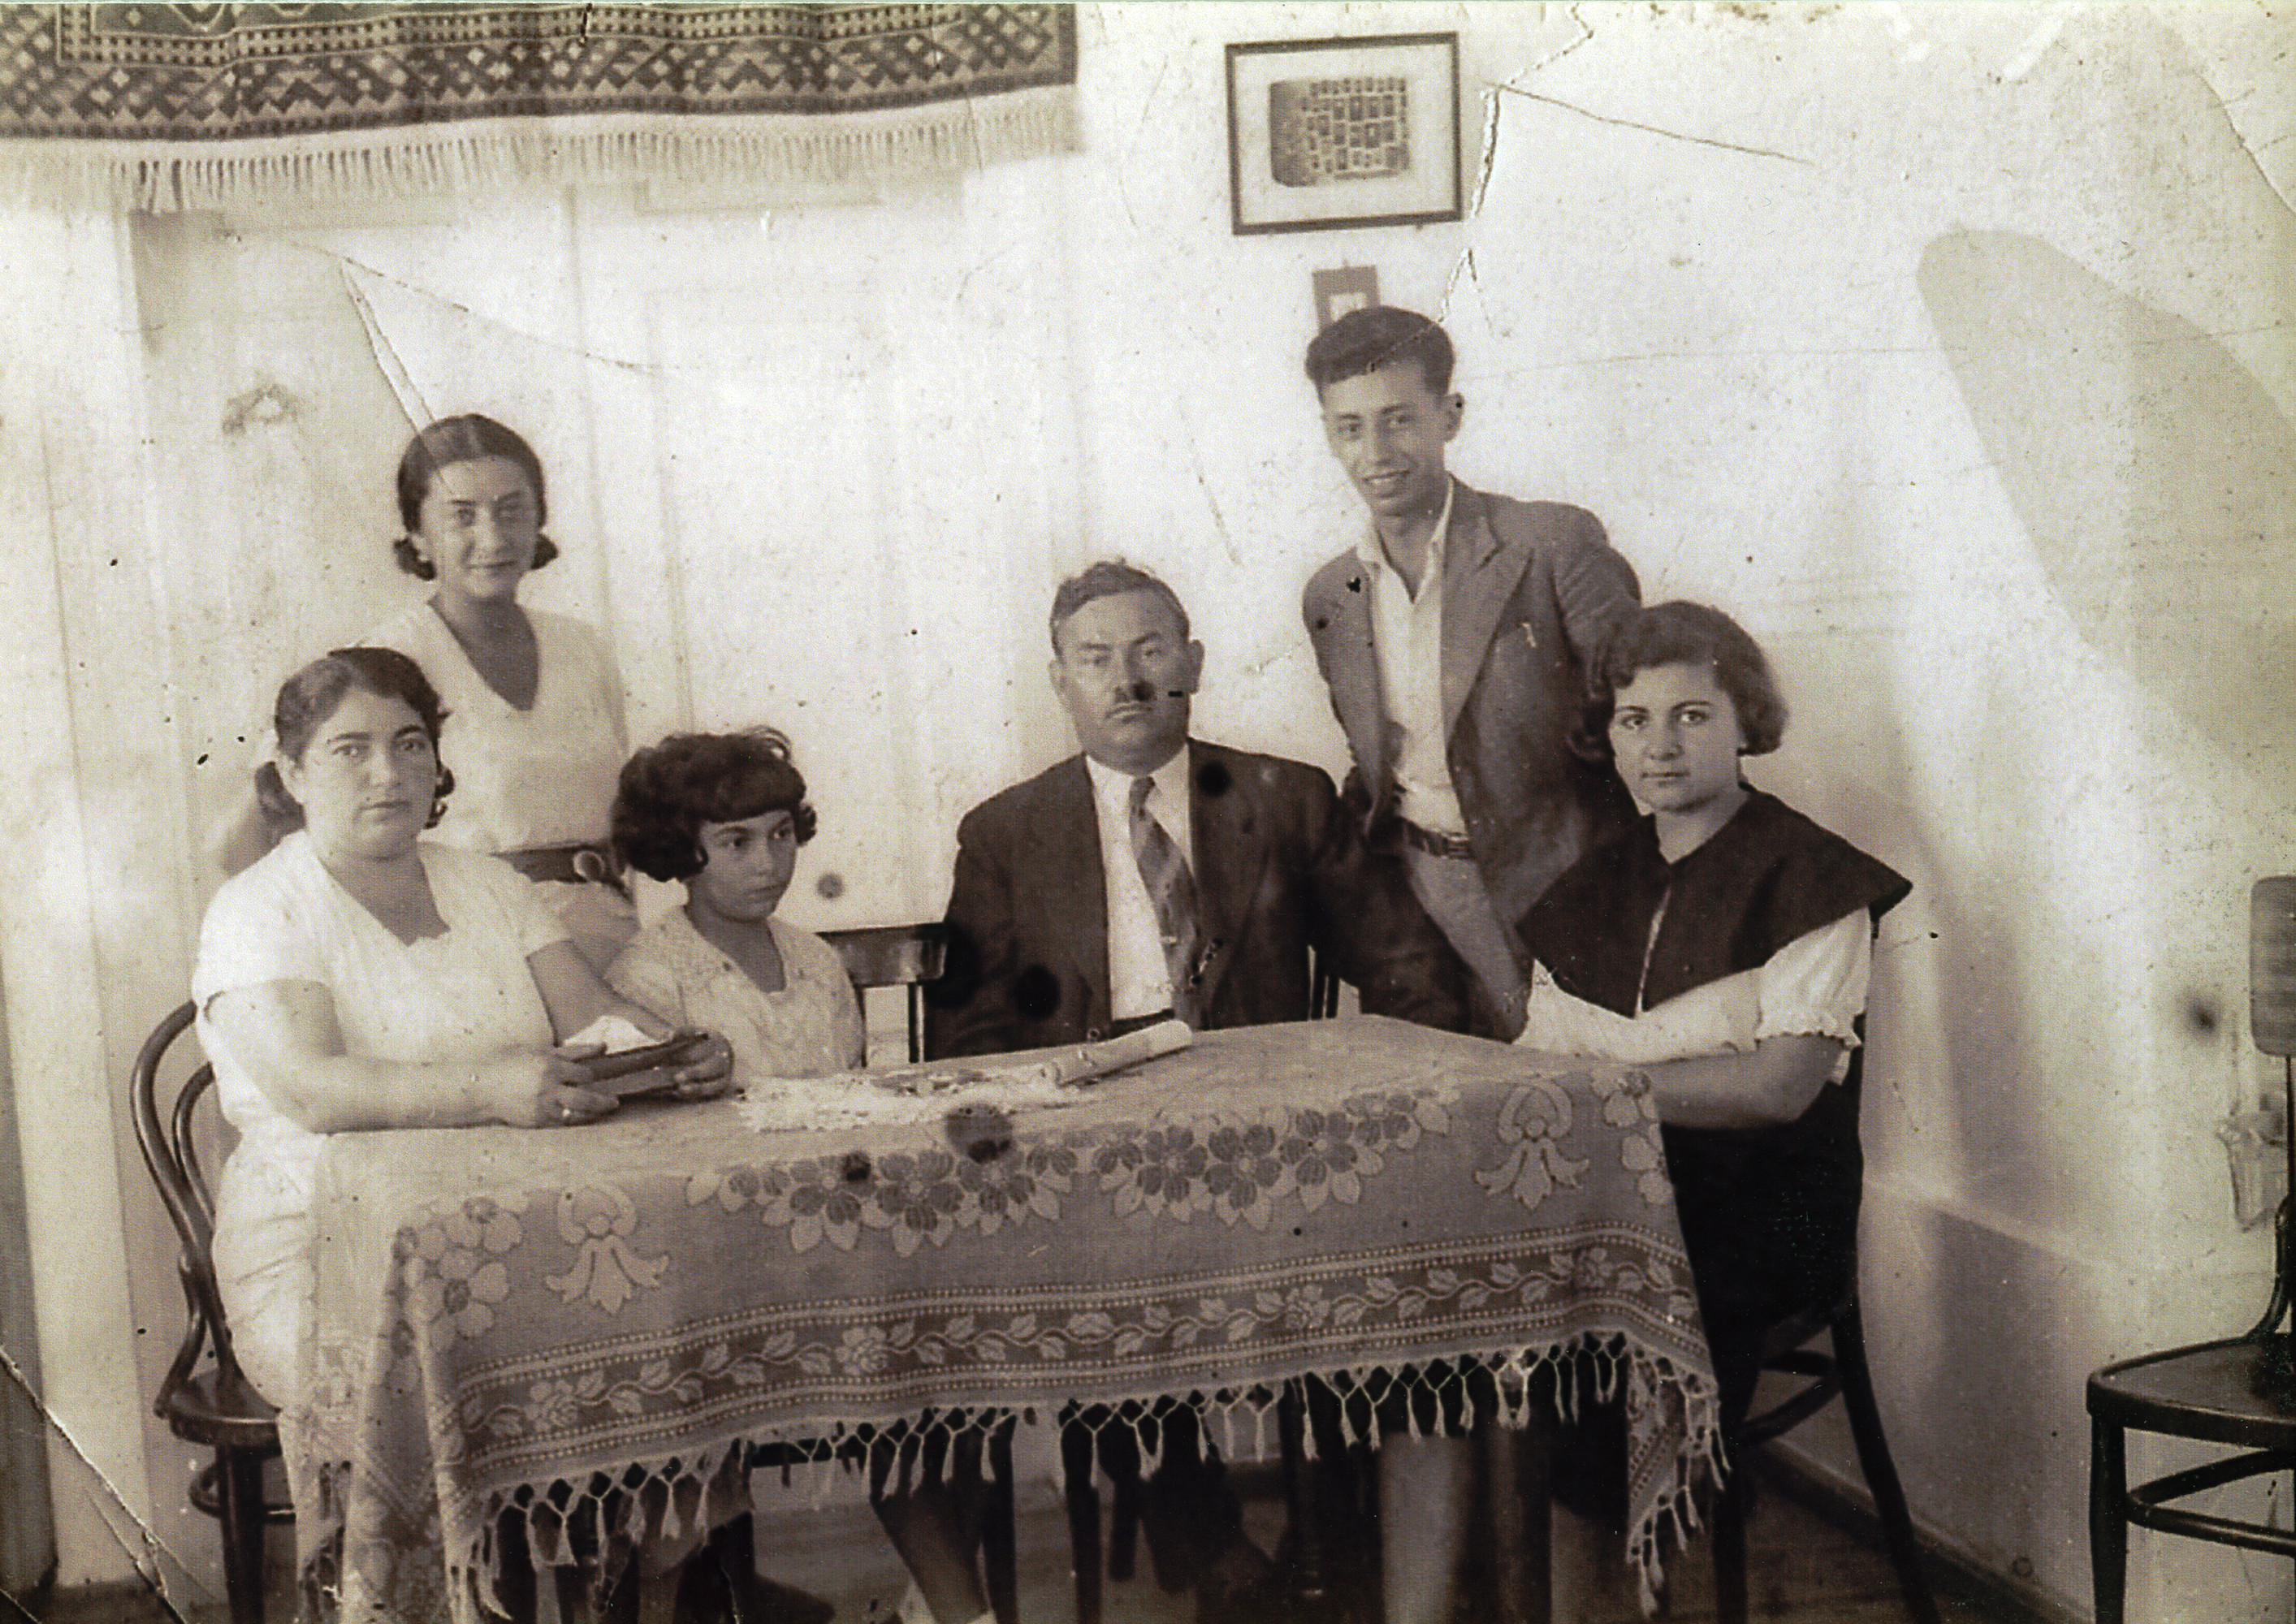 The Goldschmidt family poses around a table.  Riva Szrajer  (nee Goldschmidt) is standing behind the chairs (left). Mordechai Goldschmidt is standing behind the chairs (right). Their father, Moshe Goldshmidt, is sitting at the table (second from the right).